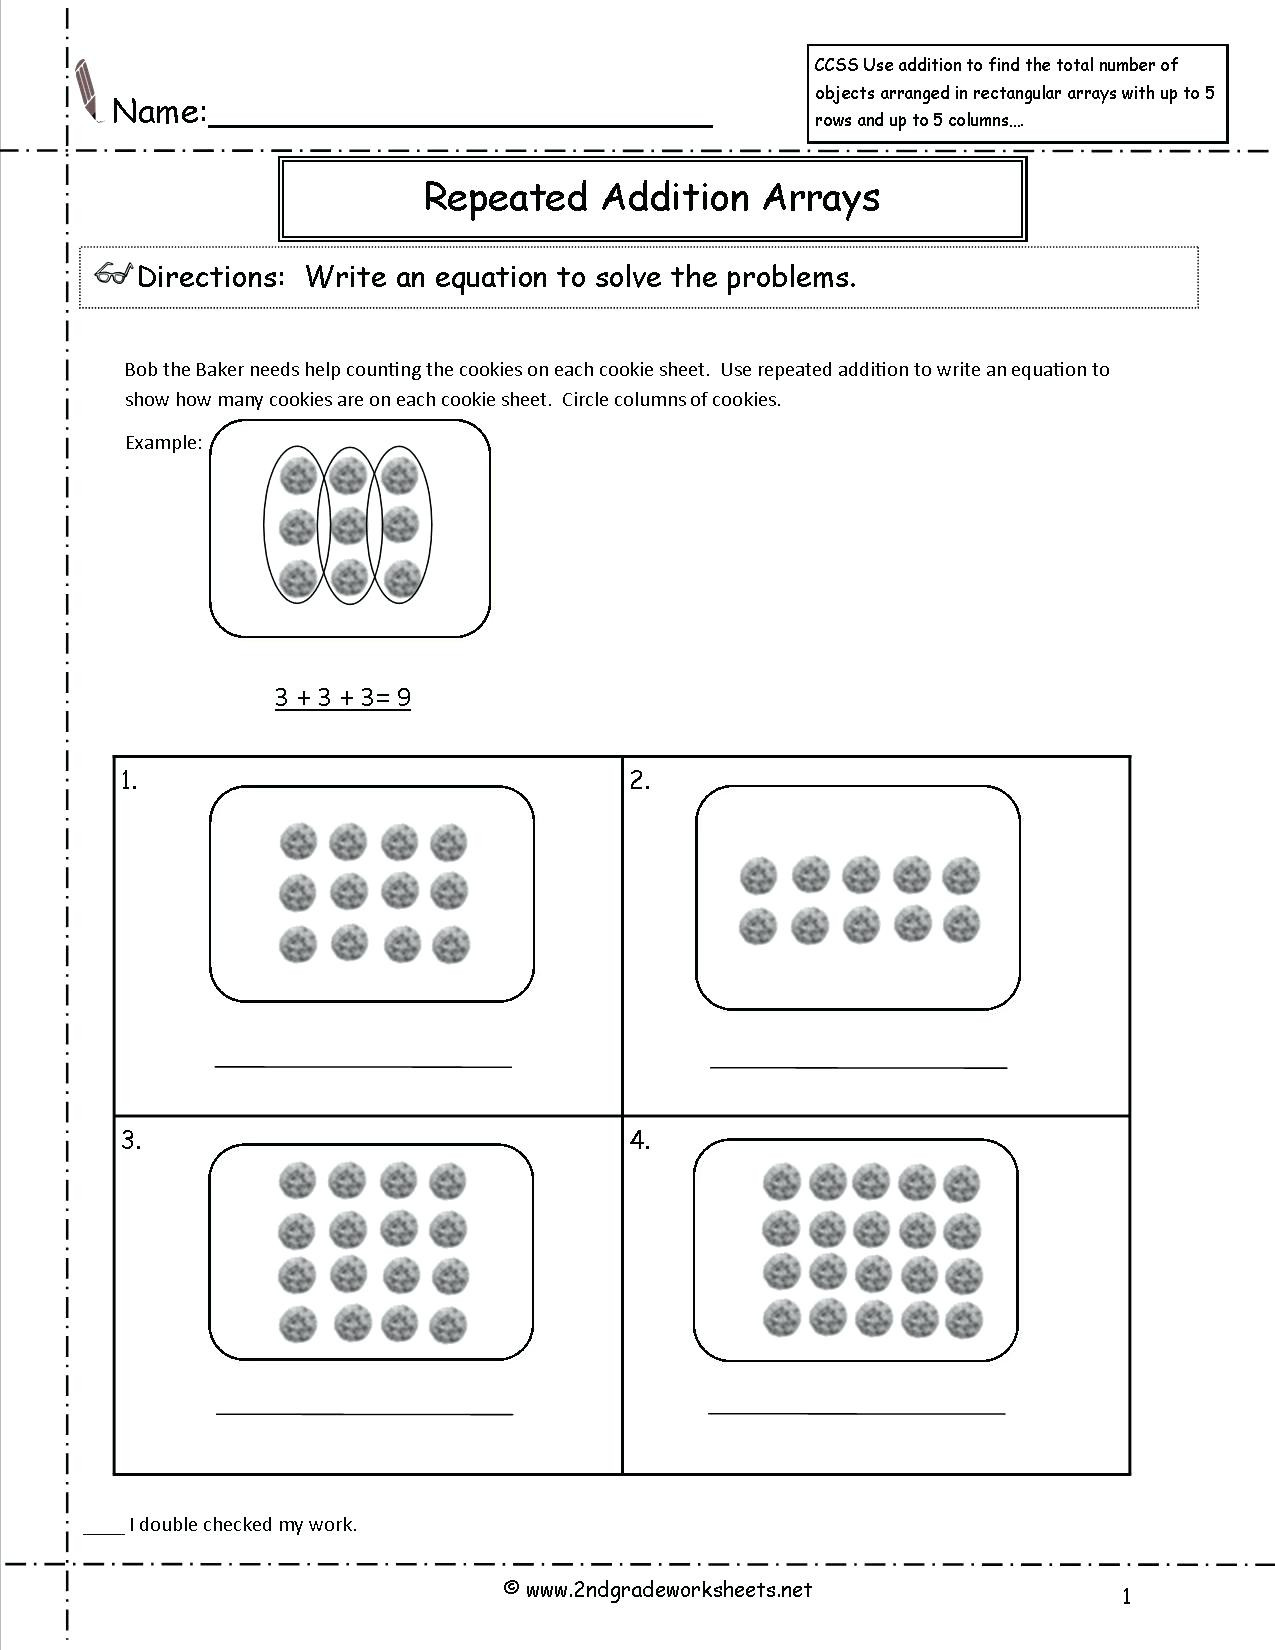 Second Grade Geometry Worksheets Measurement Word Problems 2nd Grade – Timothyfregosoub